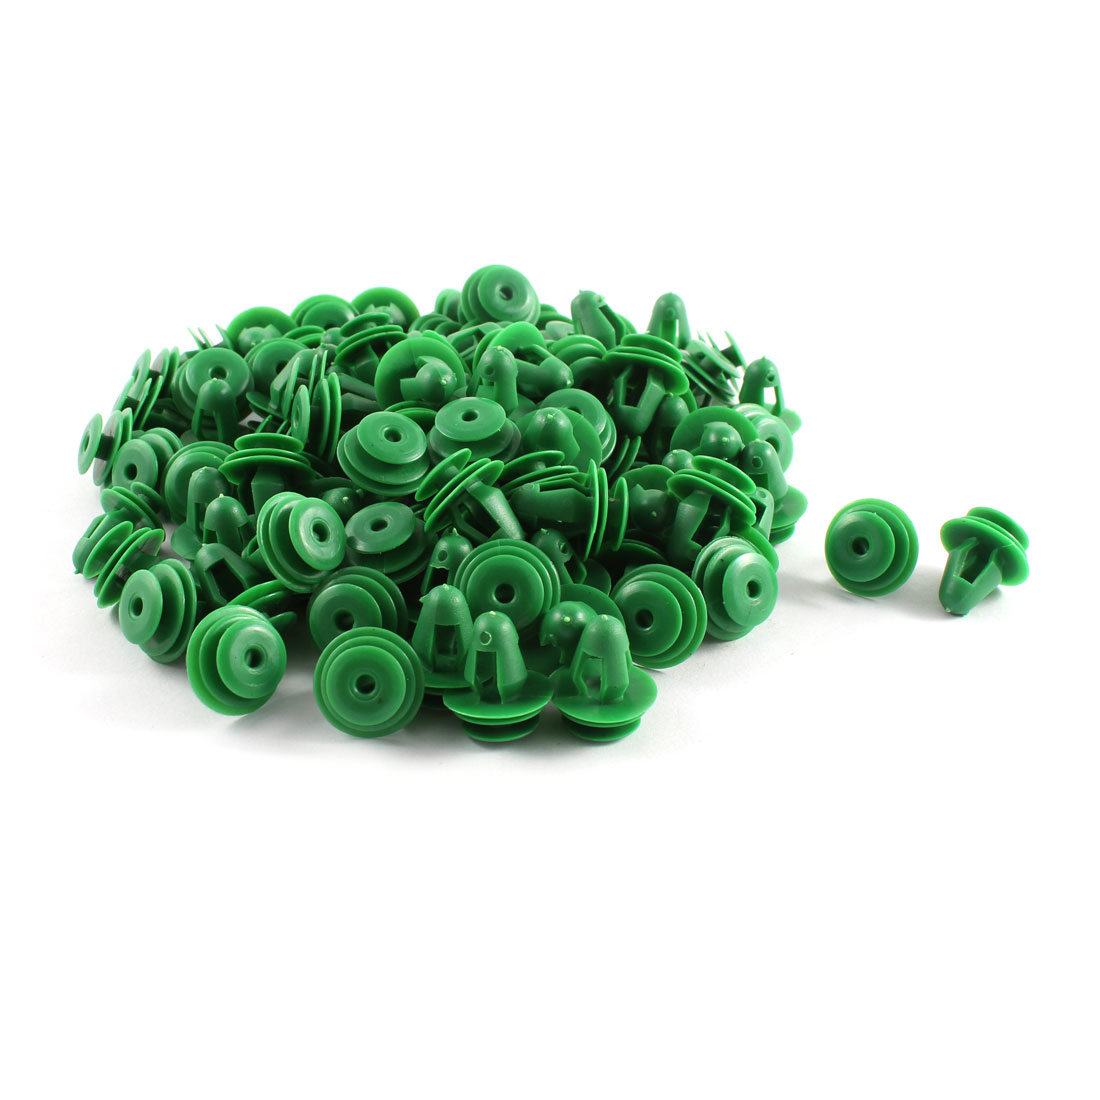 110 Pcs Green Plastic Door Trim Fastener for Car Boat 10mm Hole 17mm Head